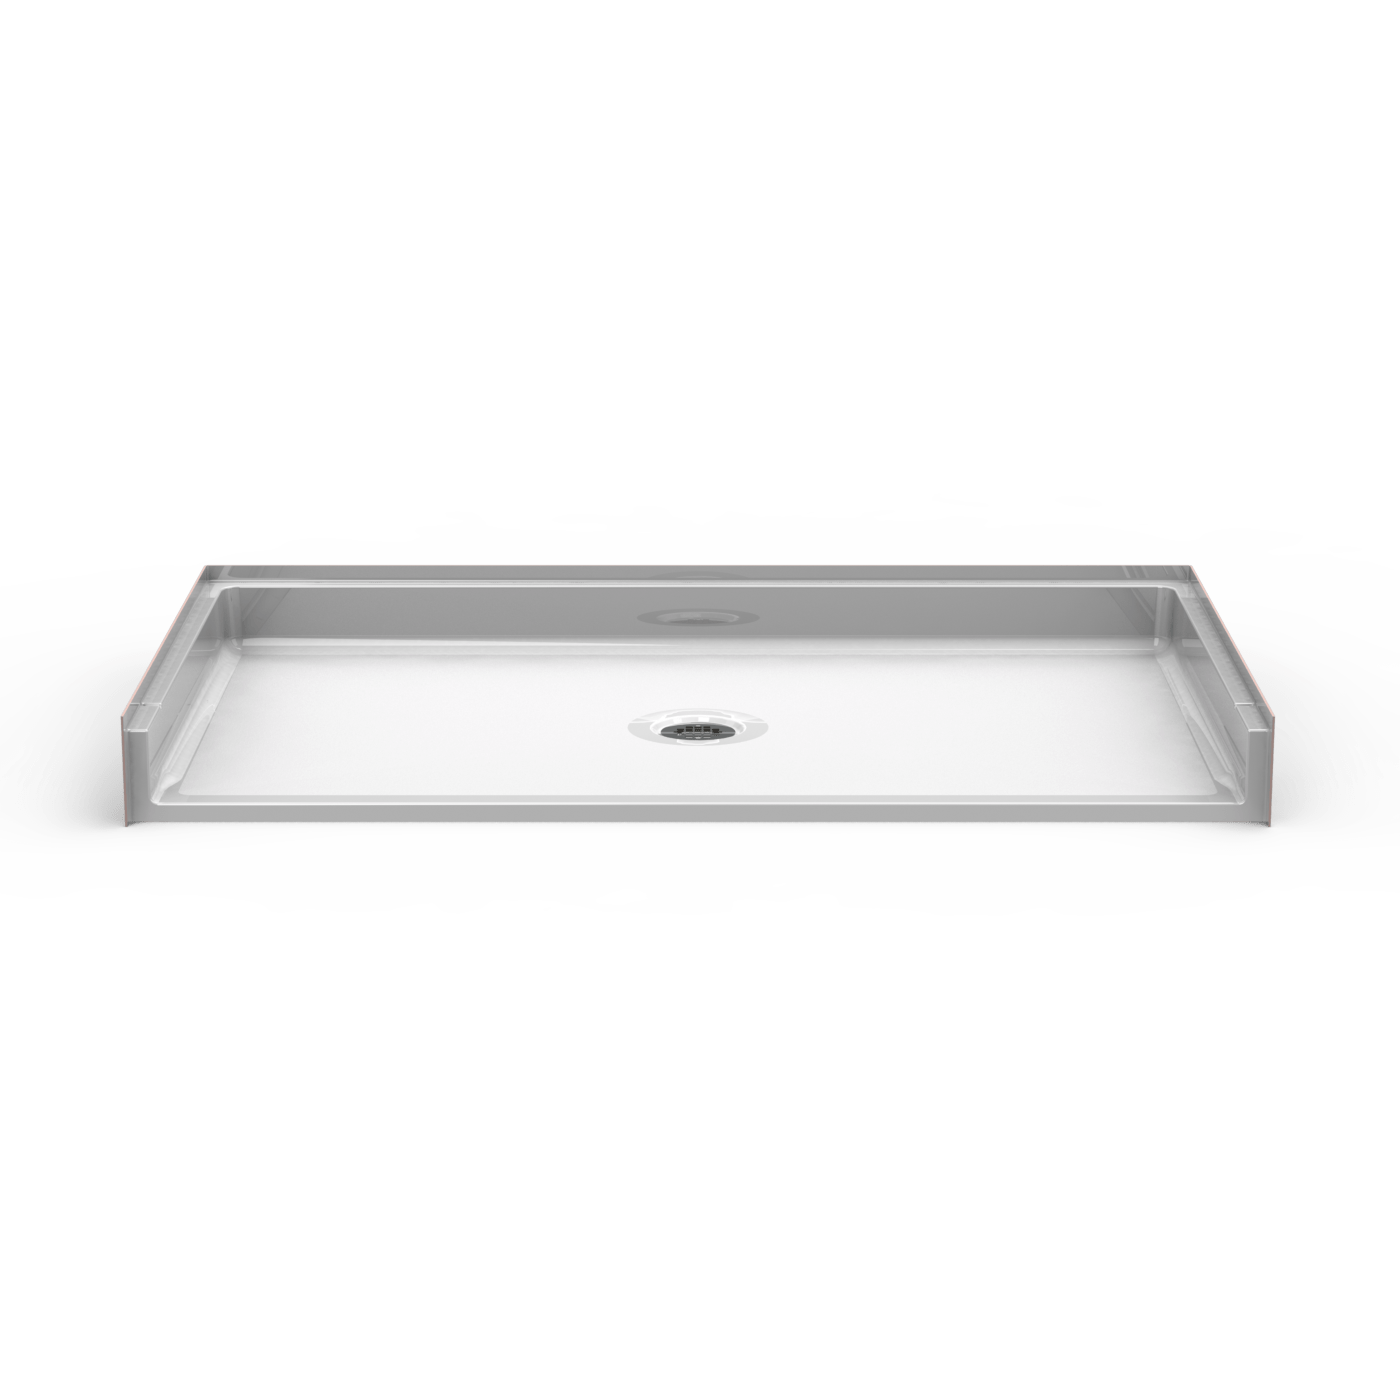 60 By 32 Shower Base Barrier Free 60 Quot X 32 Quot Shower Pan Beveled Threshold 3 4